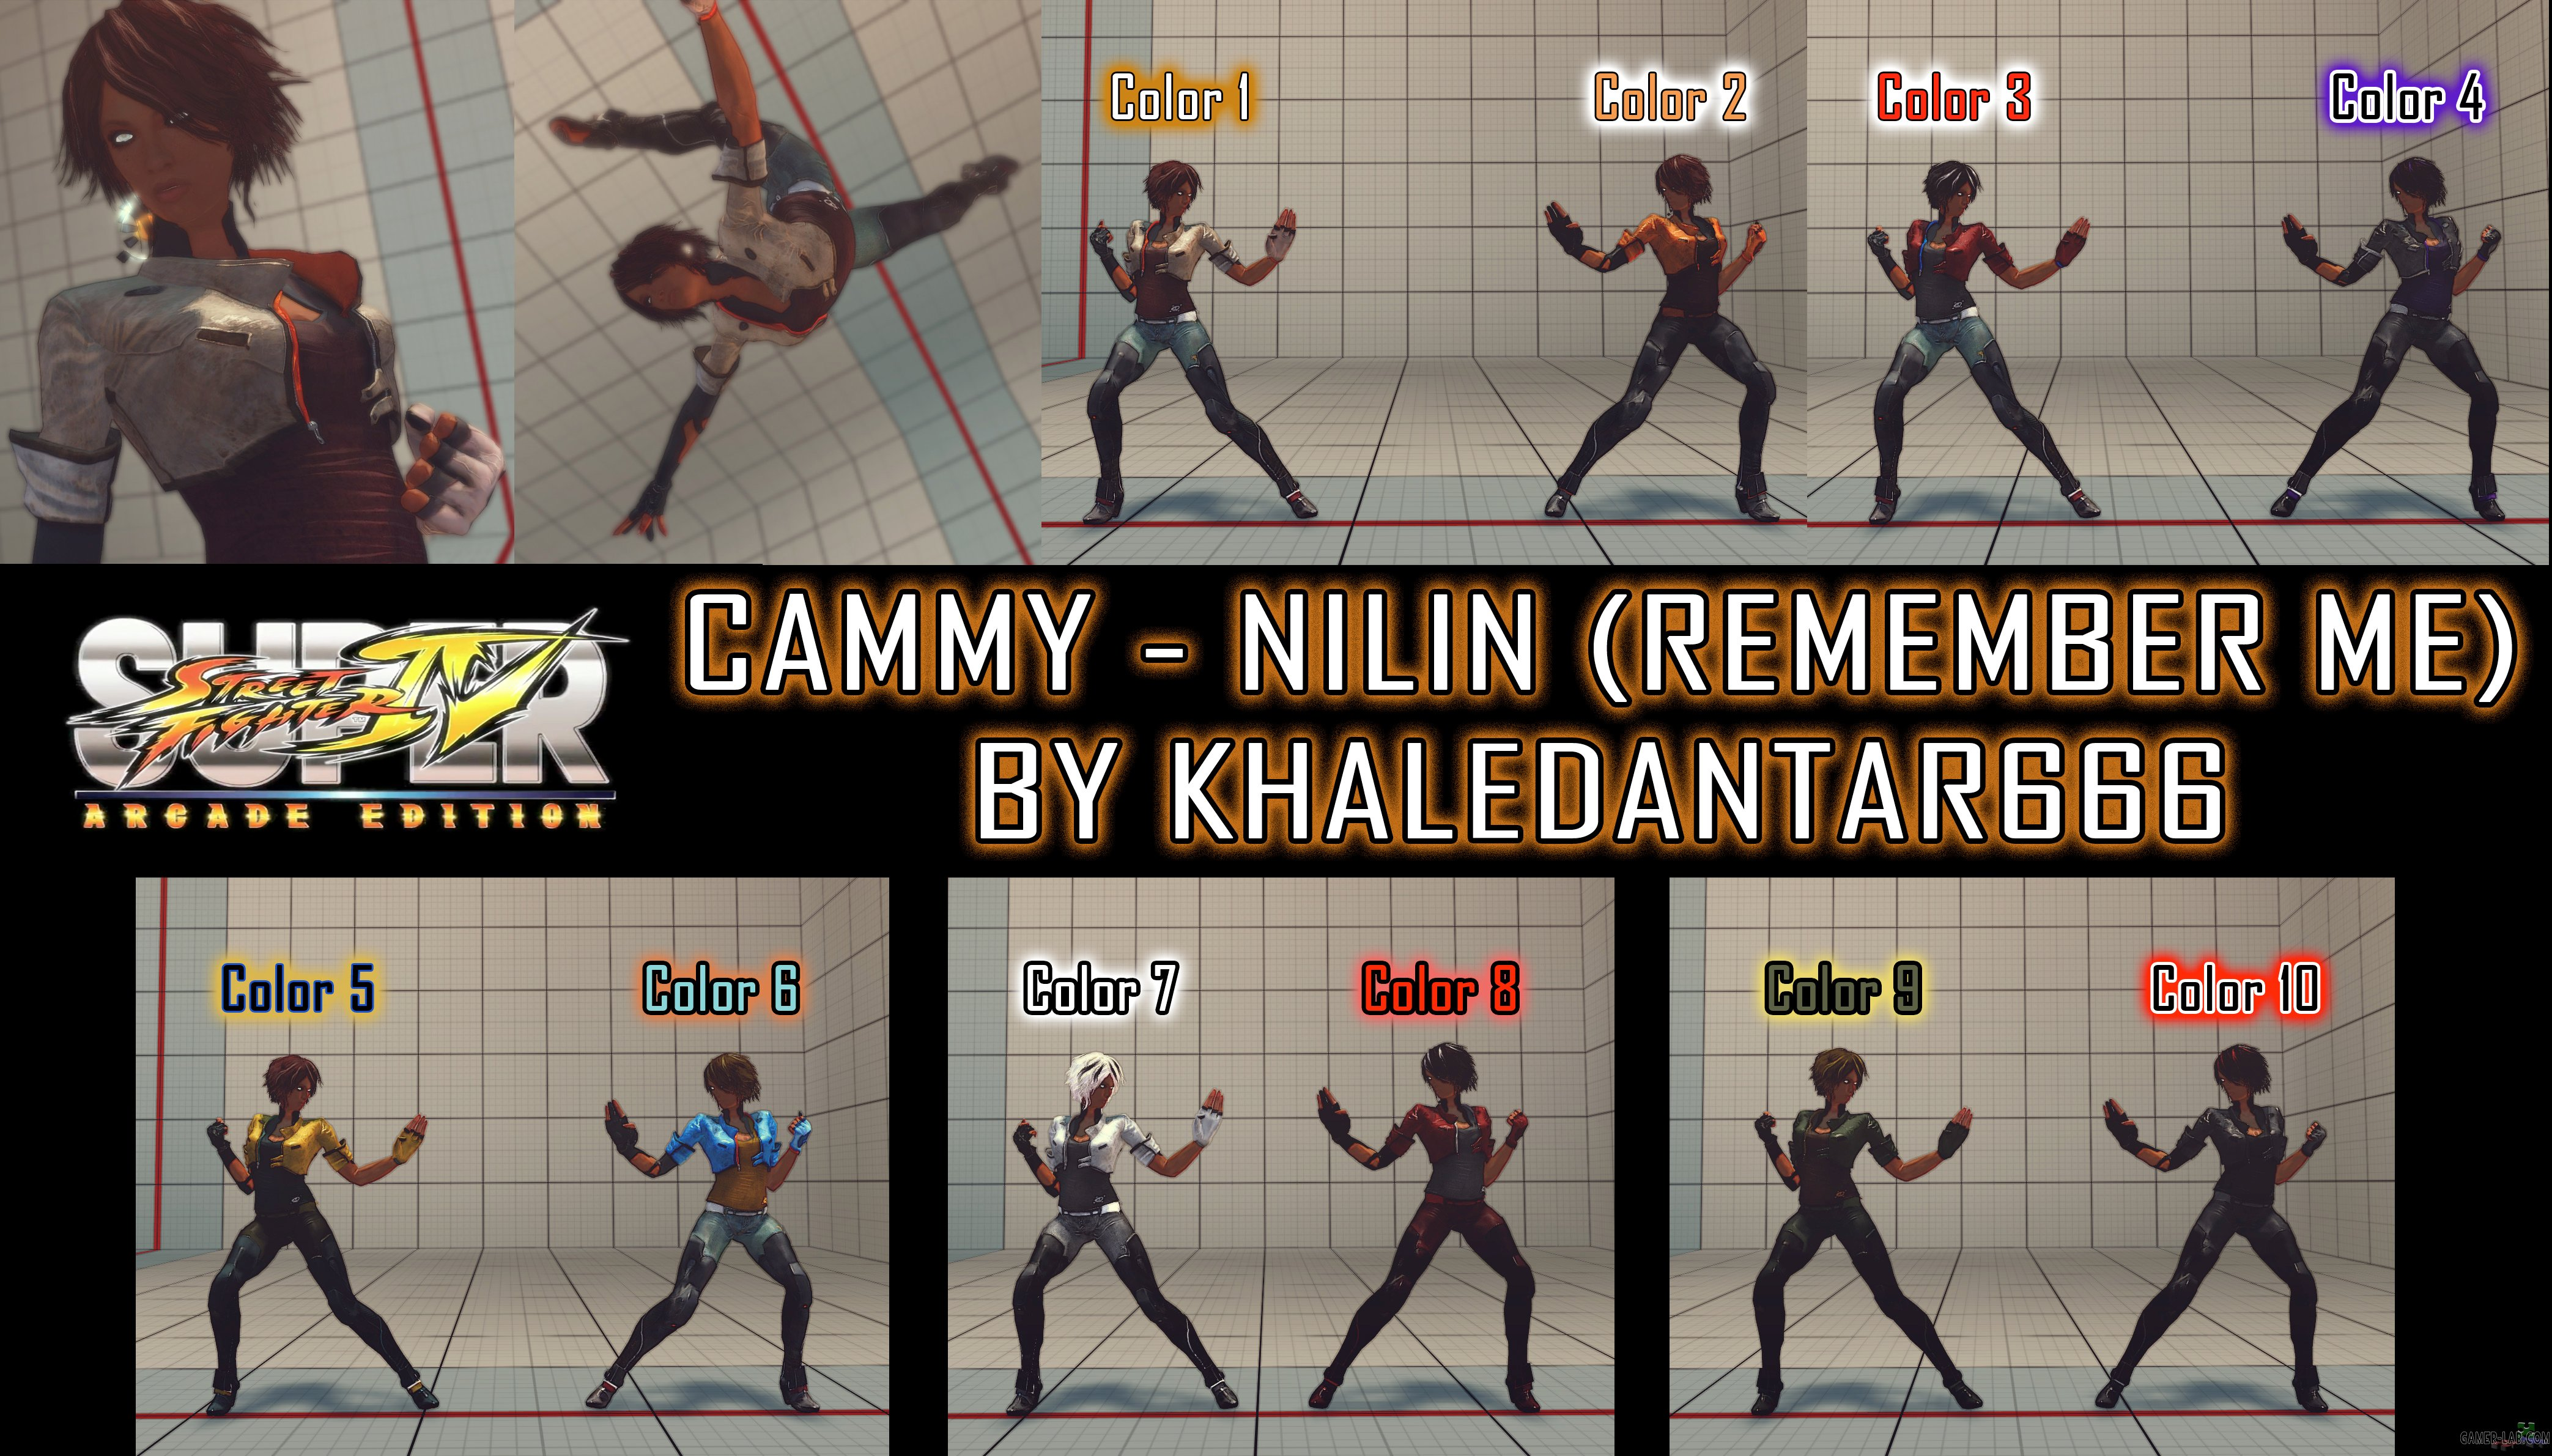 Cammy - Nilin (Remember Me)